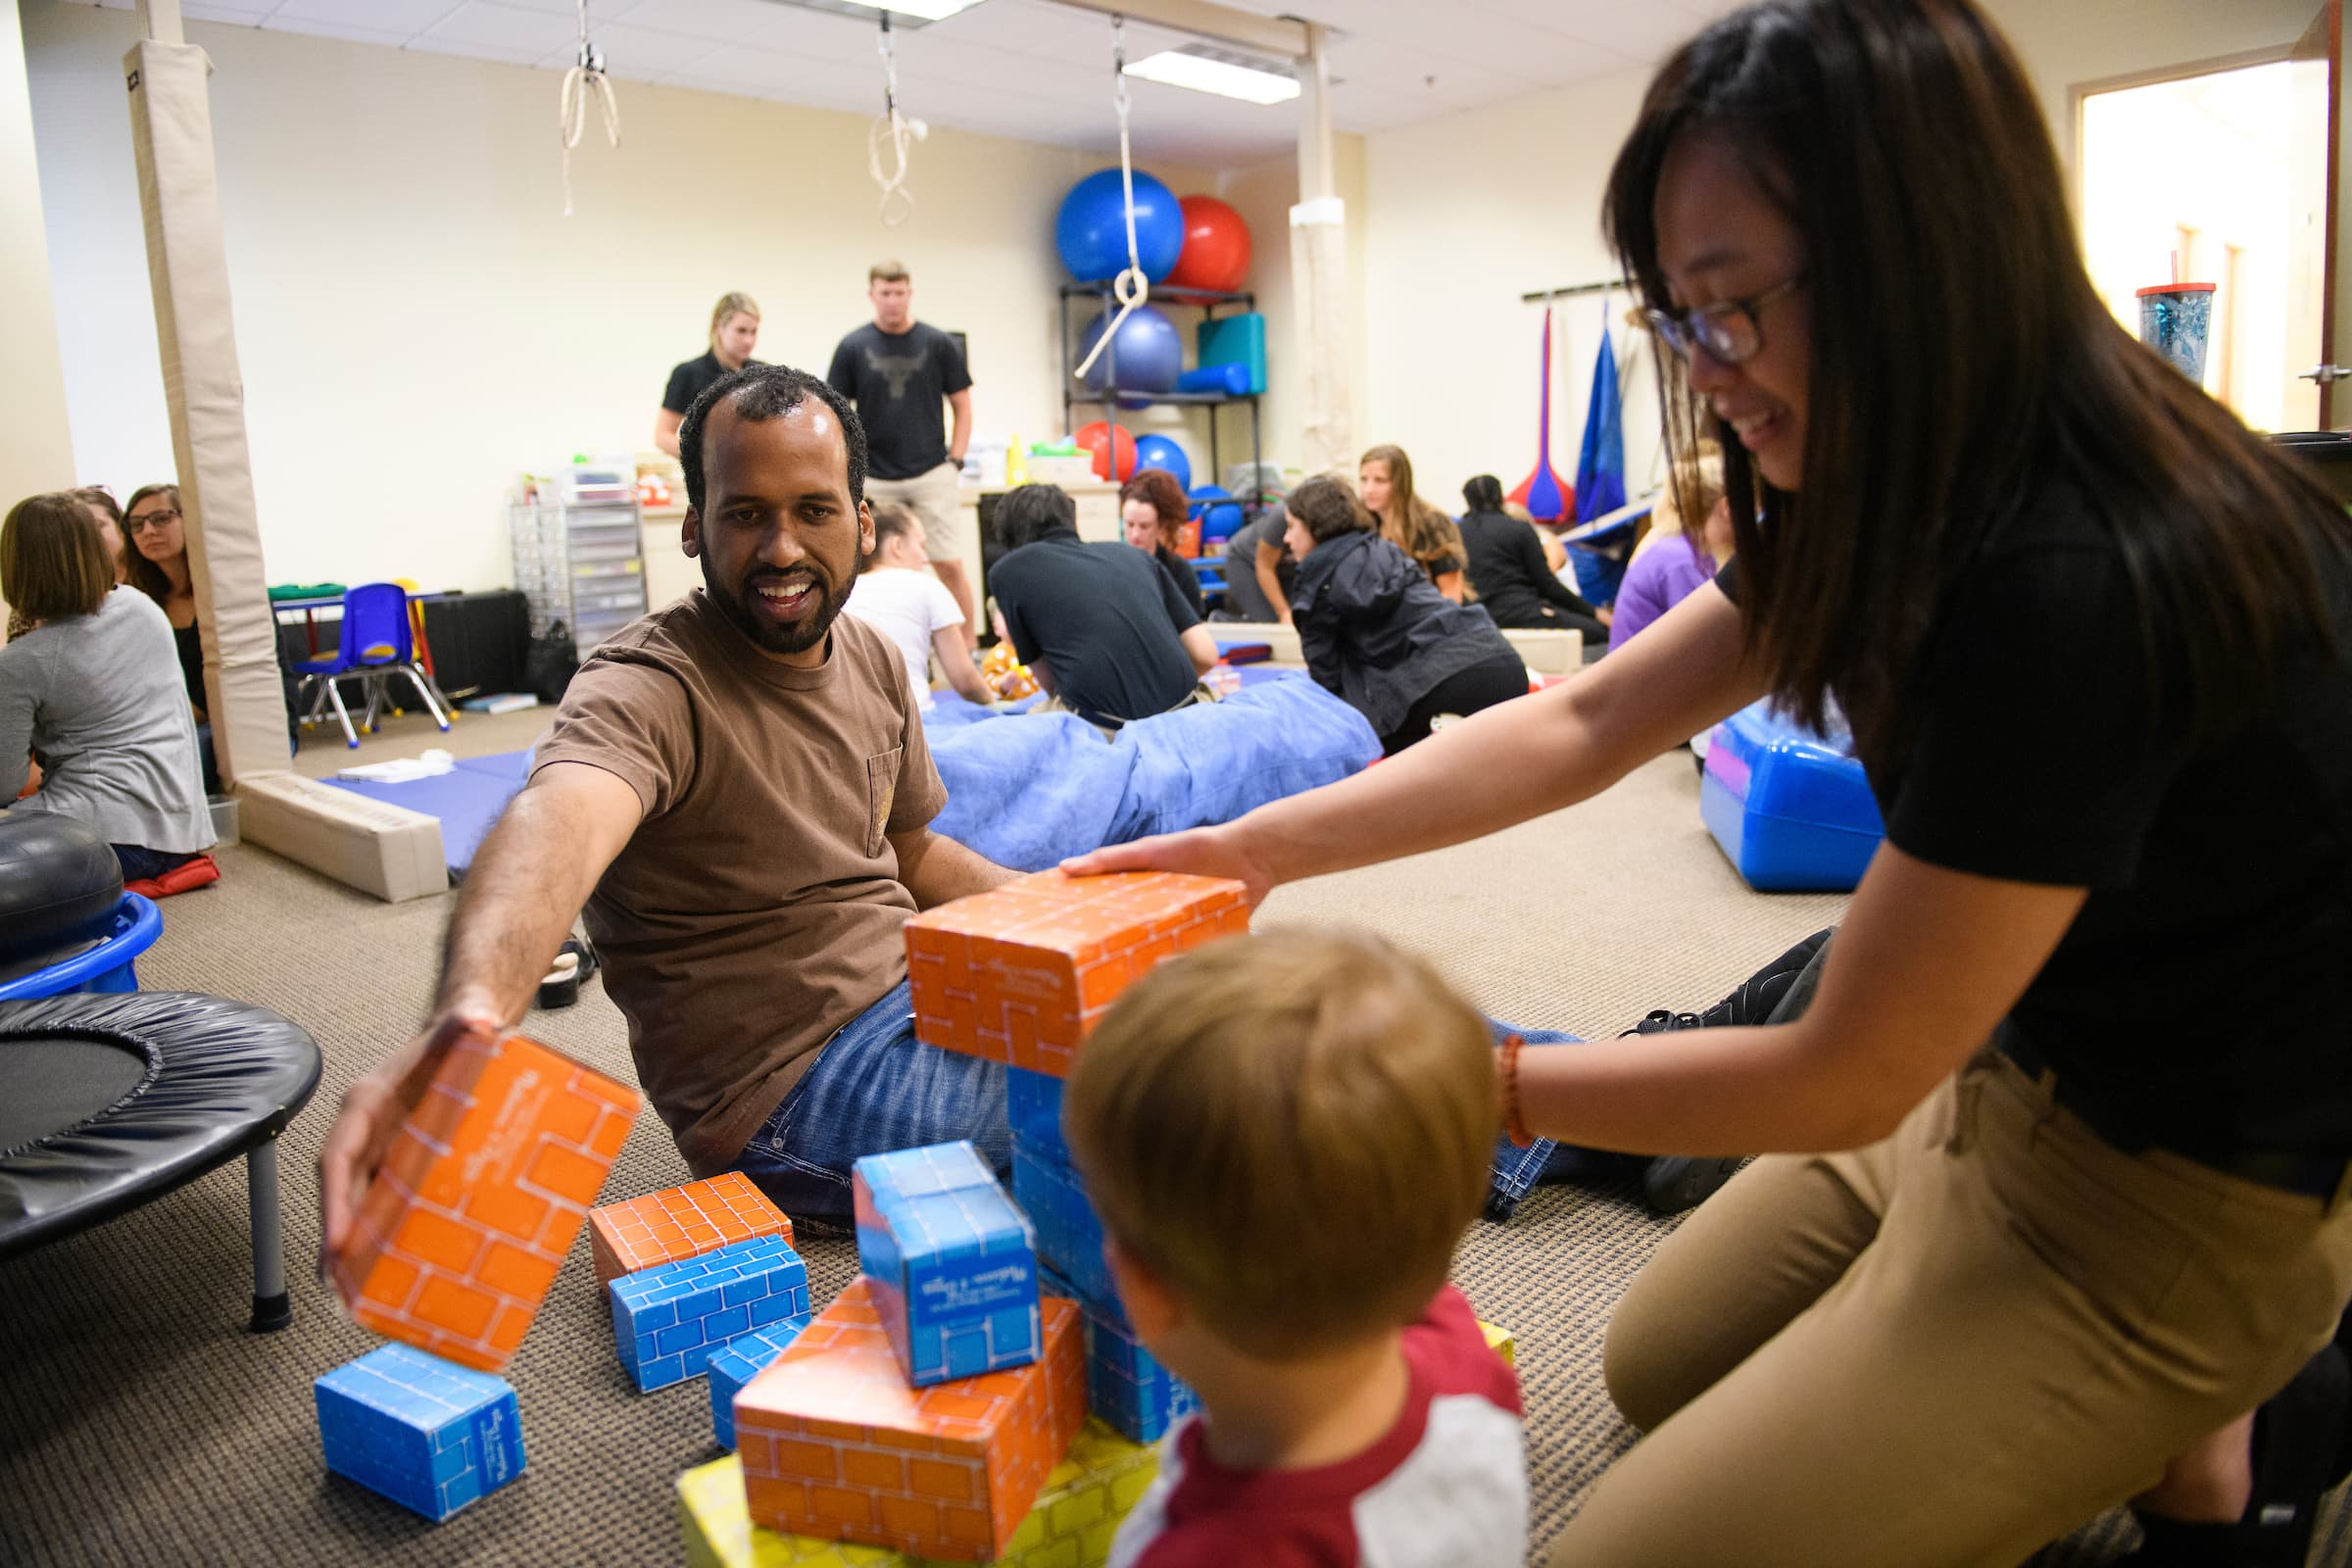 Brenau University occupational therapy students work with a child in a pediatrics lab in 2019. The School of Occupational Therapy was recently ranked No. 42 in the nation by 'U.S. News & World Report.'